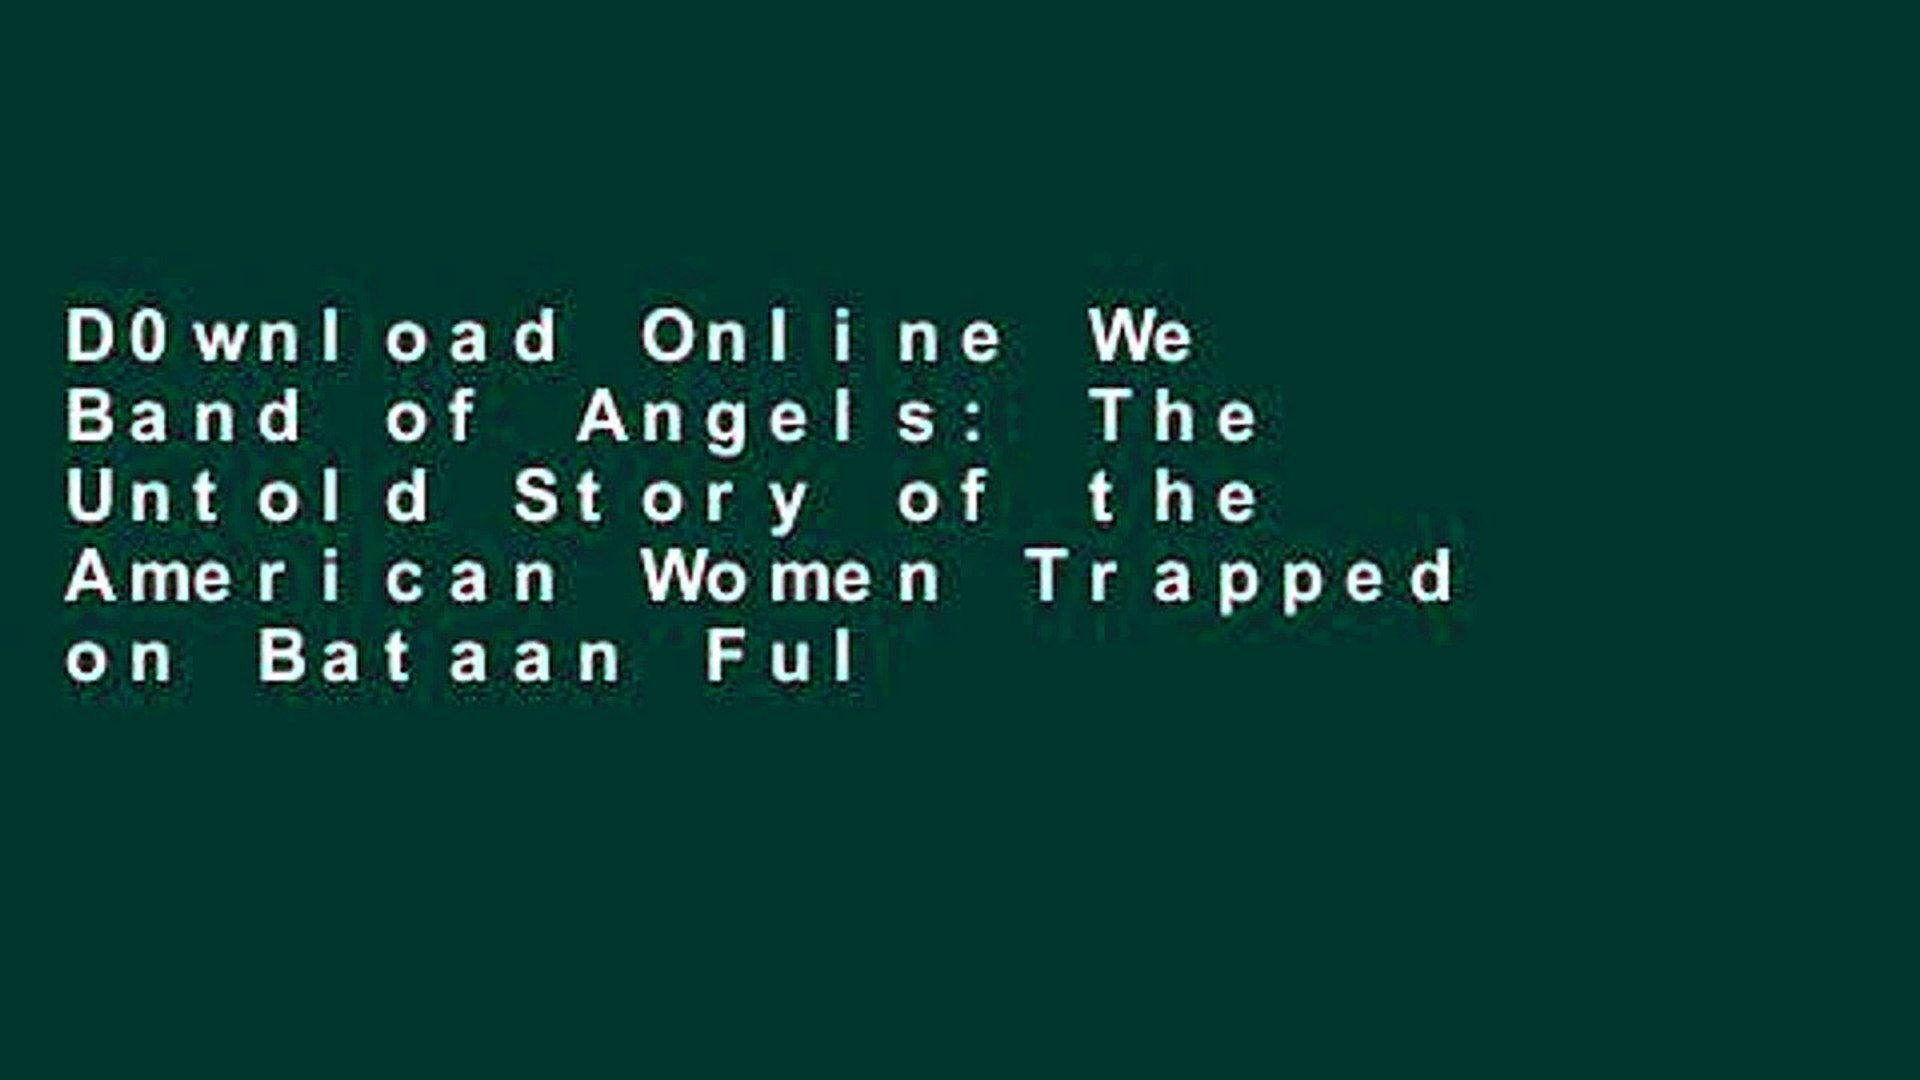 D0wnload Online We Band of Angels: The Untold Story of the American Women Trapped on Bataan Full